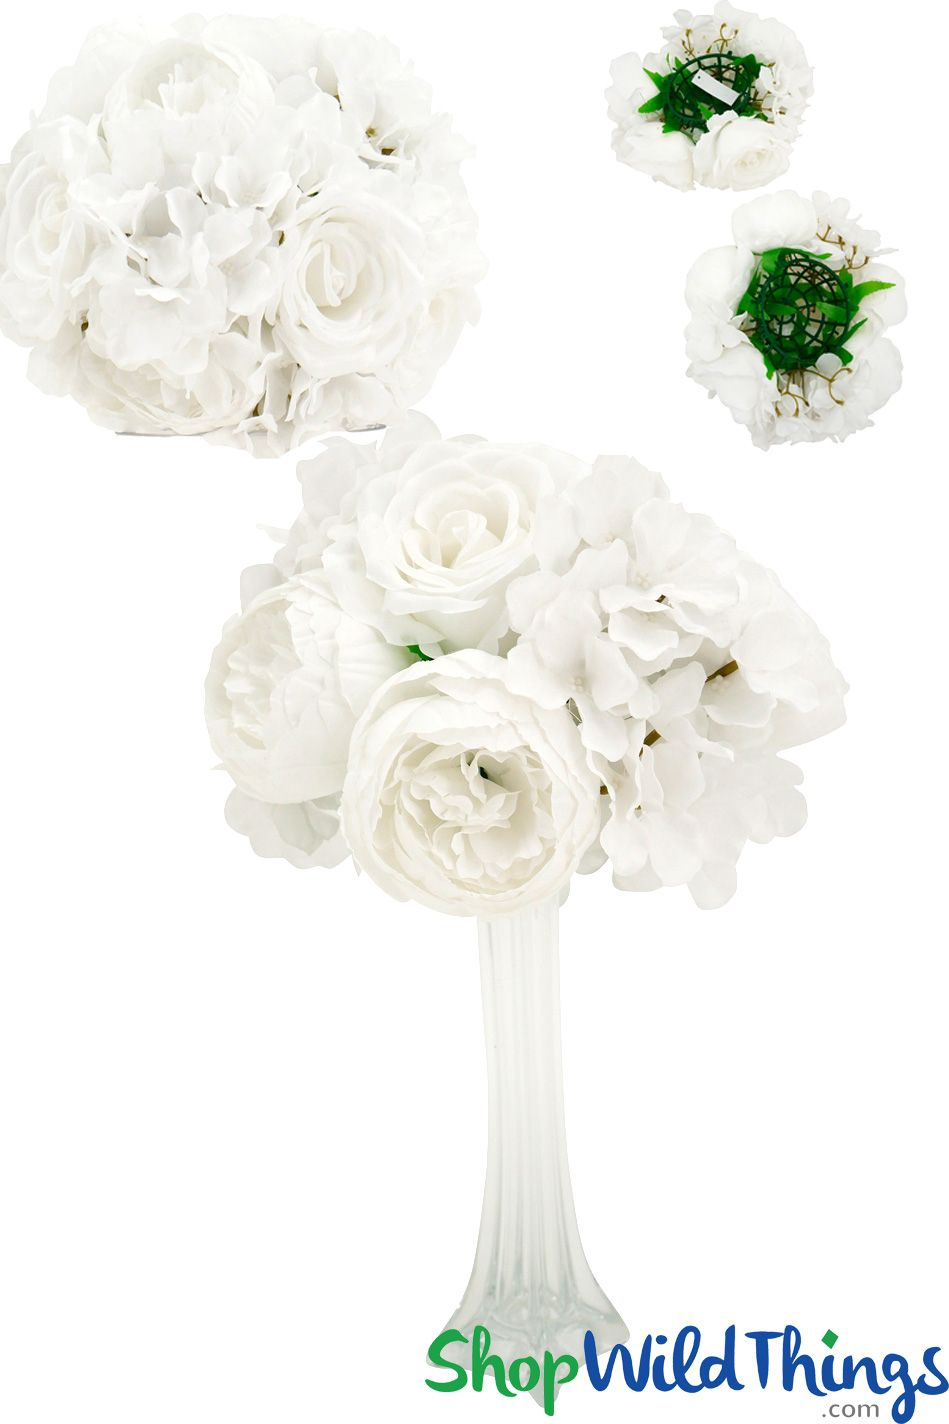 Flower Ball 10 2 In 1 Premium Silk Roses Peonies Hydrangeas